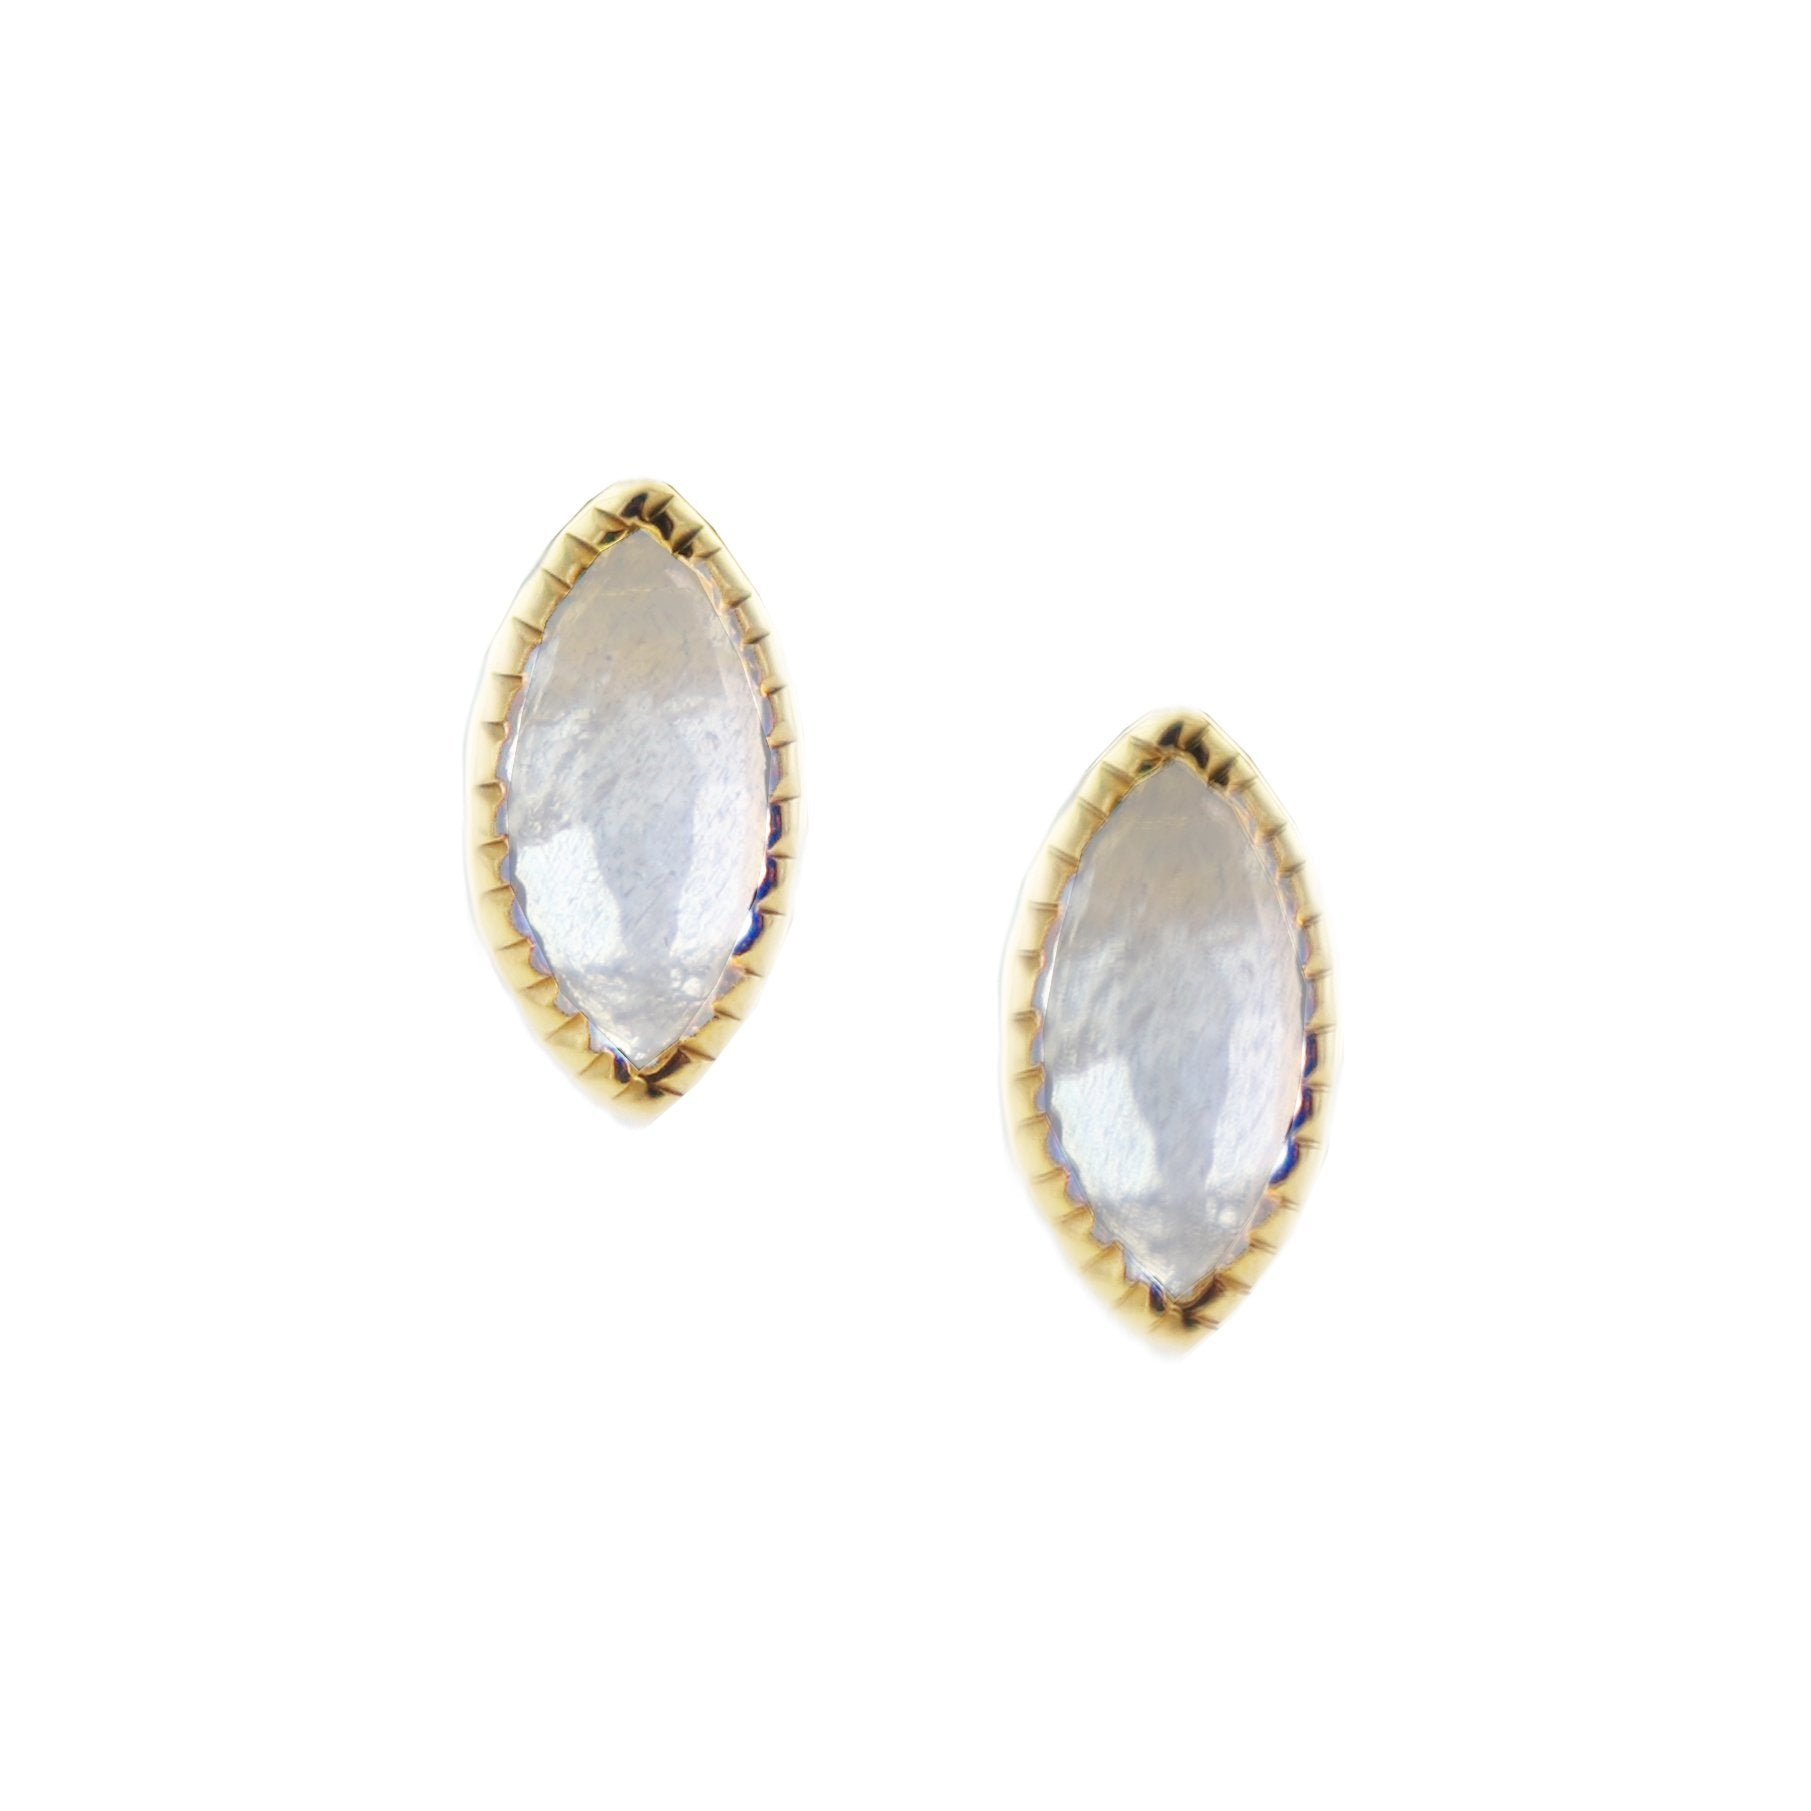 MINI TRUST STUD EARRINGS - MOONSTONE & GOLD - SO PRETTY CARA COTTER